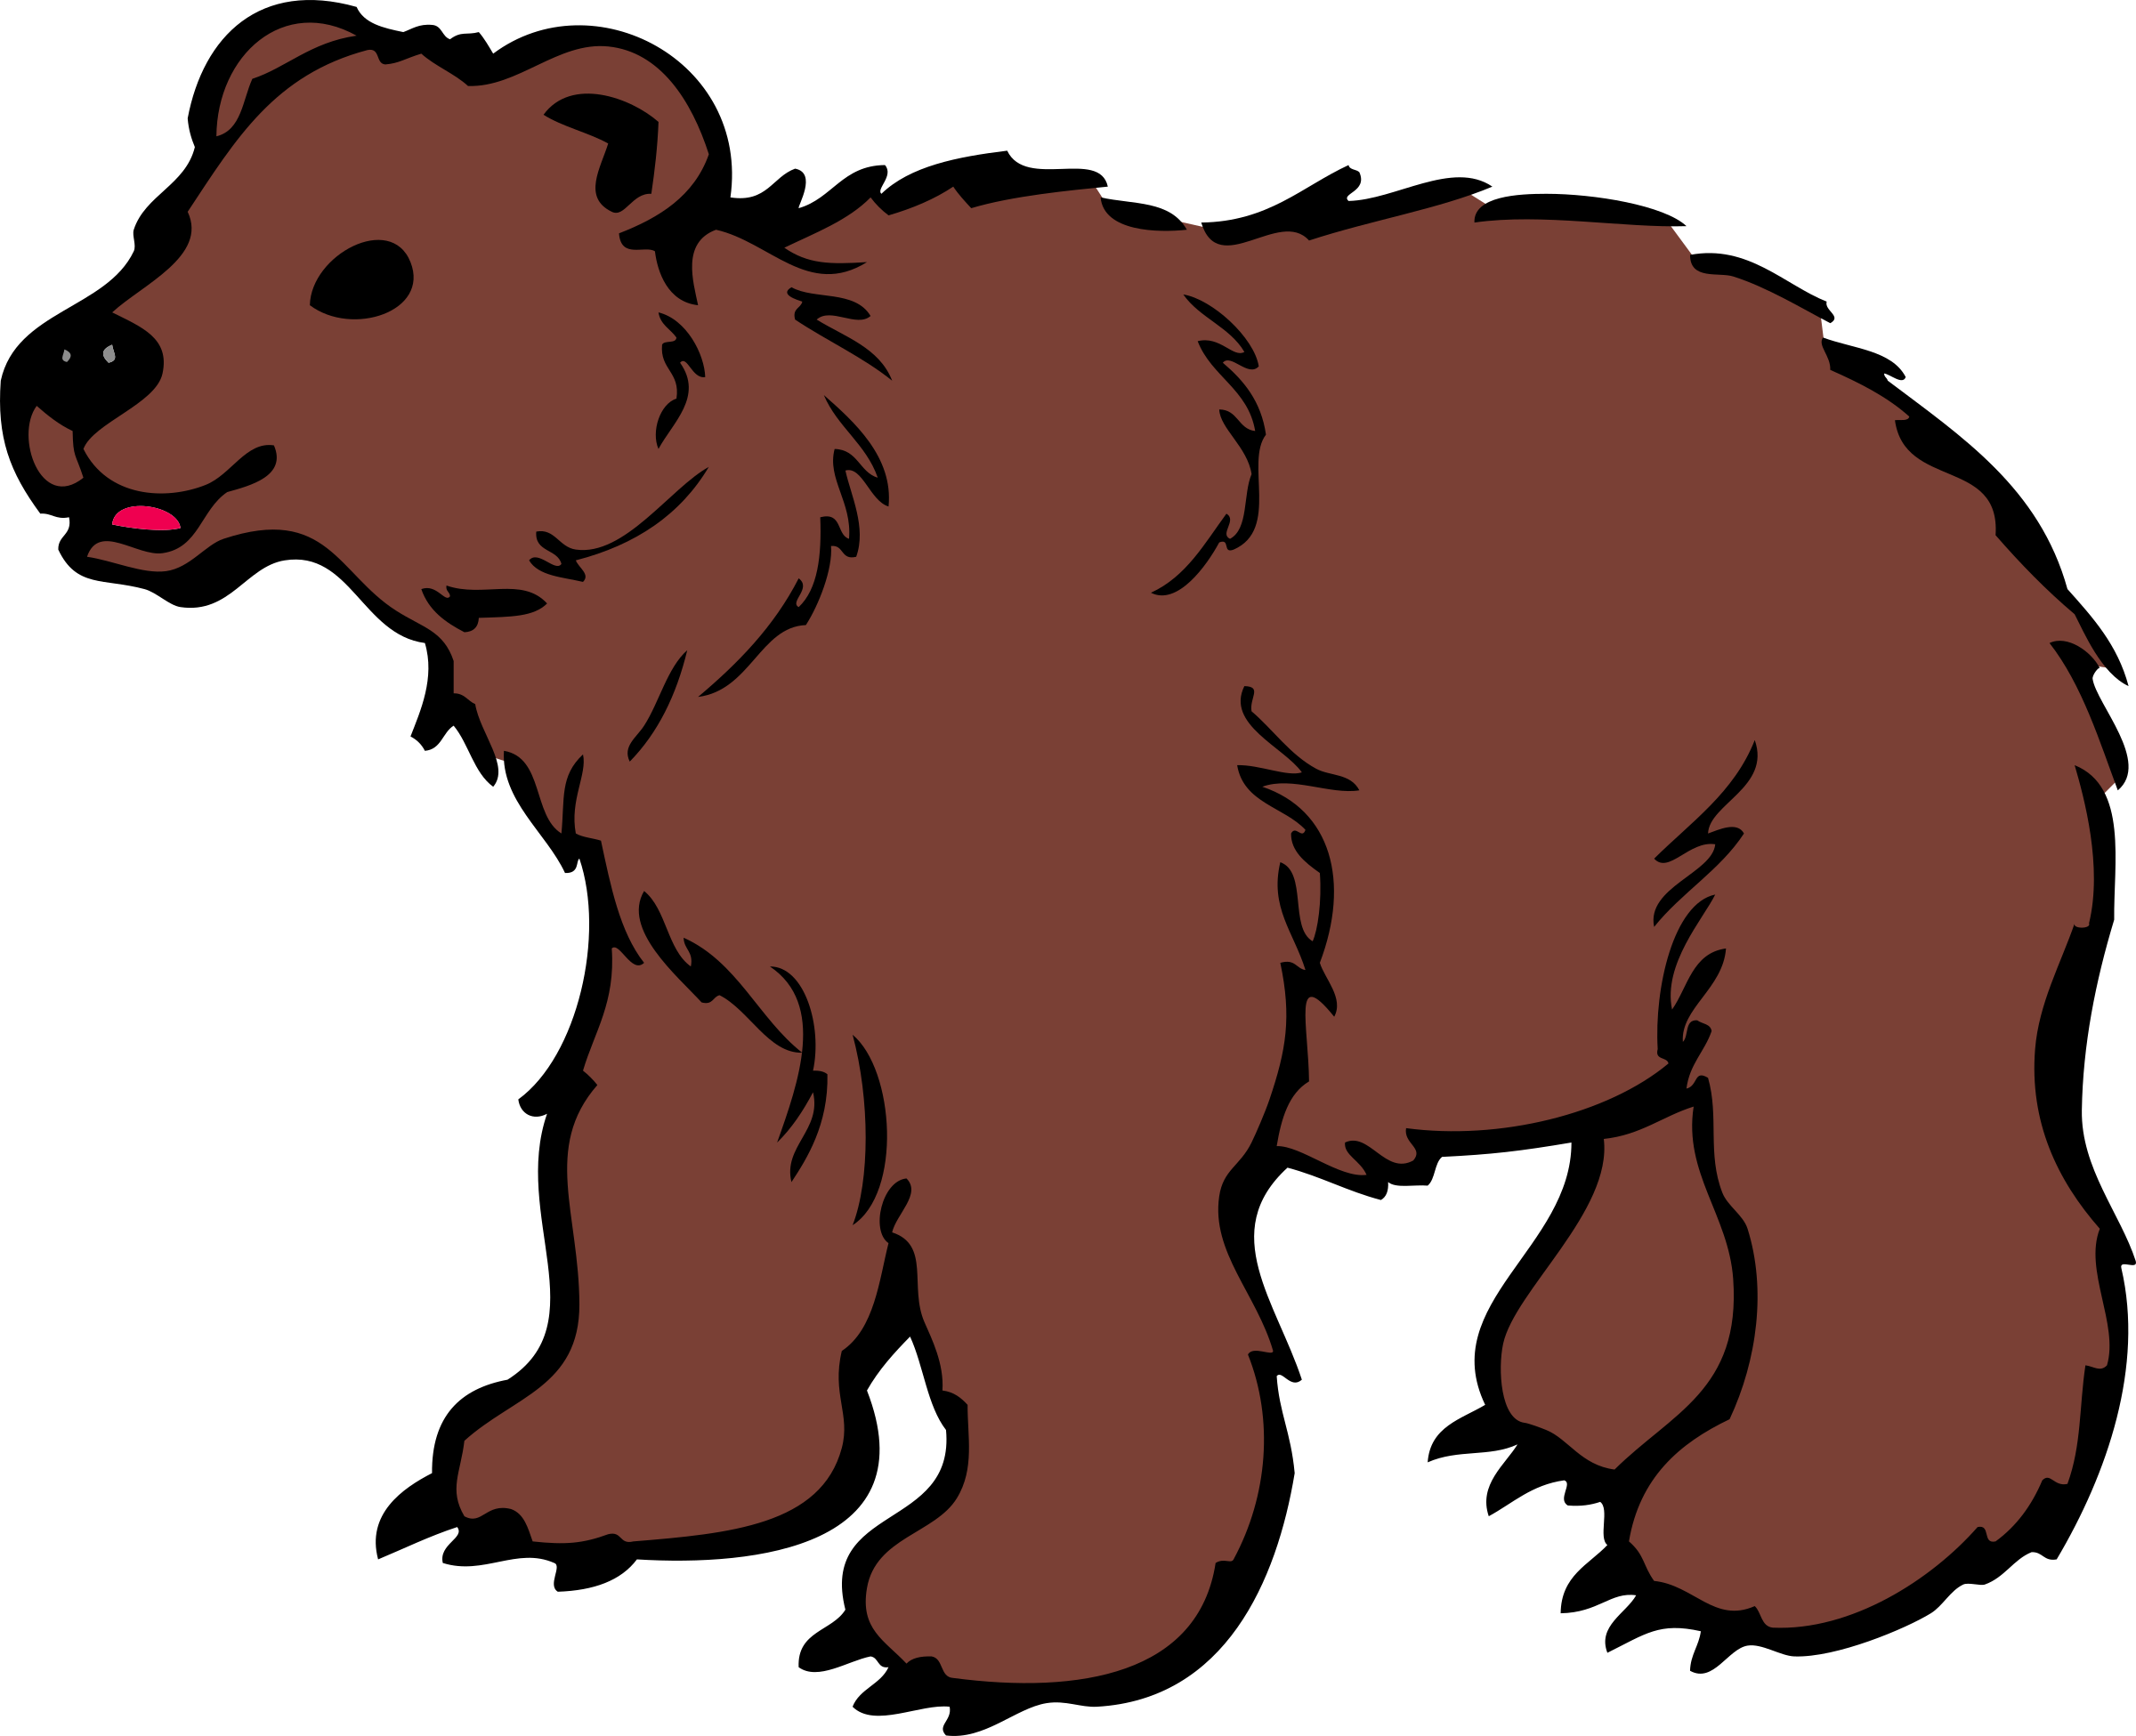 scary bear clipart at getdrawings com free for personal use scary rh getdrawings com free beard clip art free beer clipart